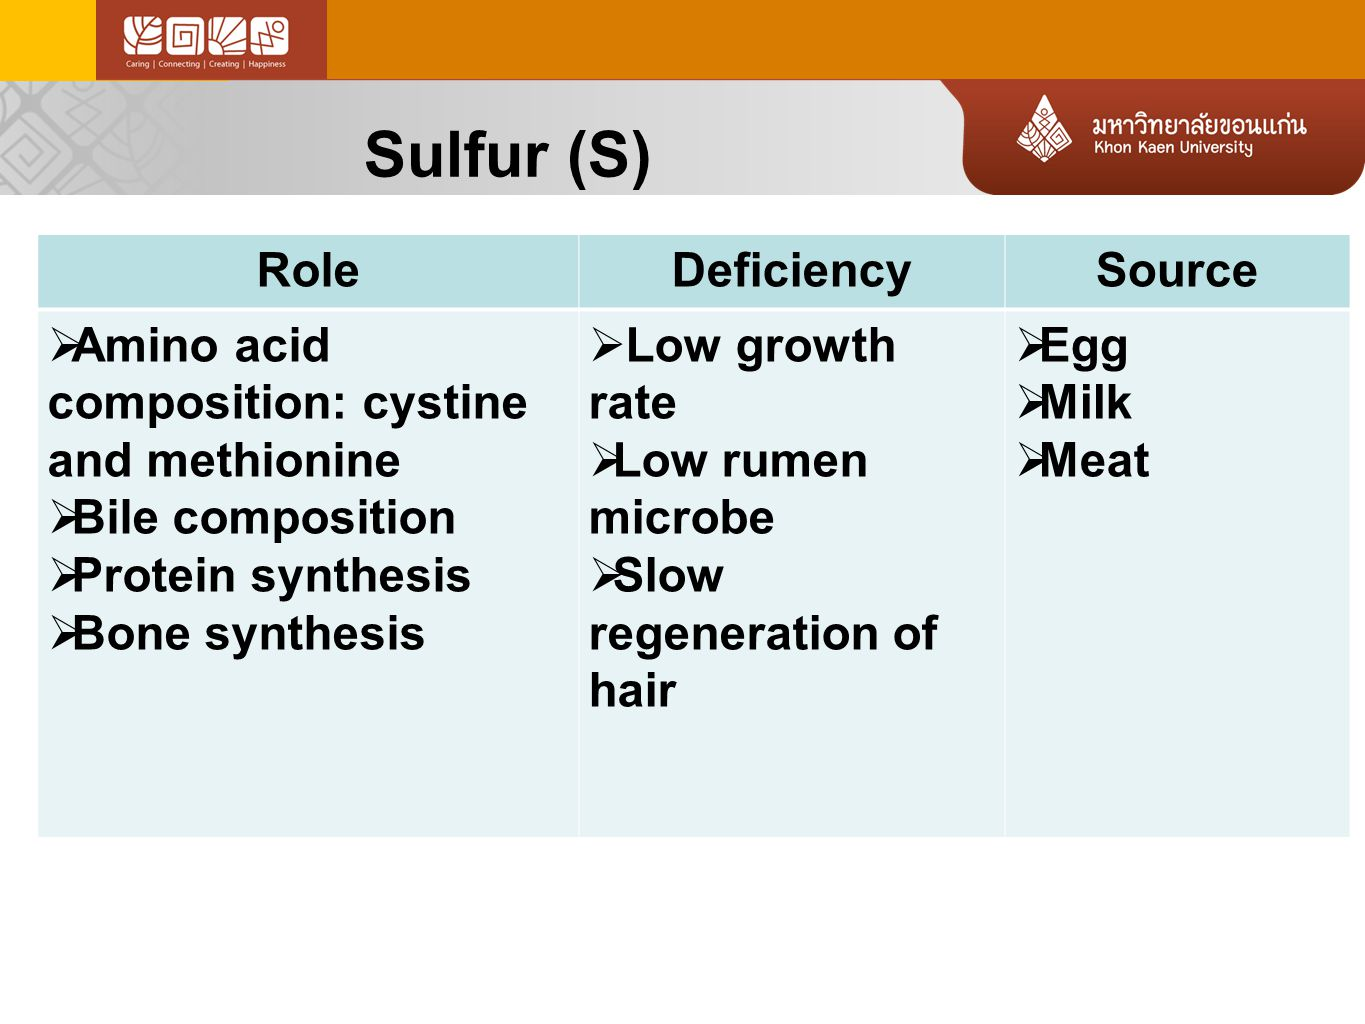 Sulfur (S) RoleDeficiencySource  Amino acid composition: cystine and methionine  Bile composition  Protein synthesis  Bone synthesis  Low growth rate  Low rumen microbe  Slow regeneration of hair  Egg  Milk  Meat